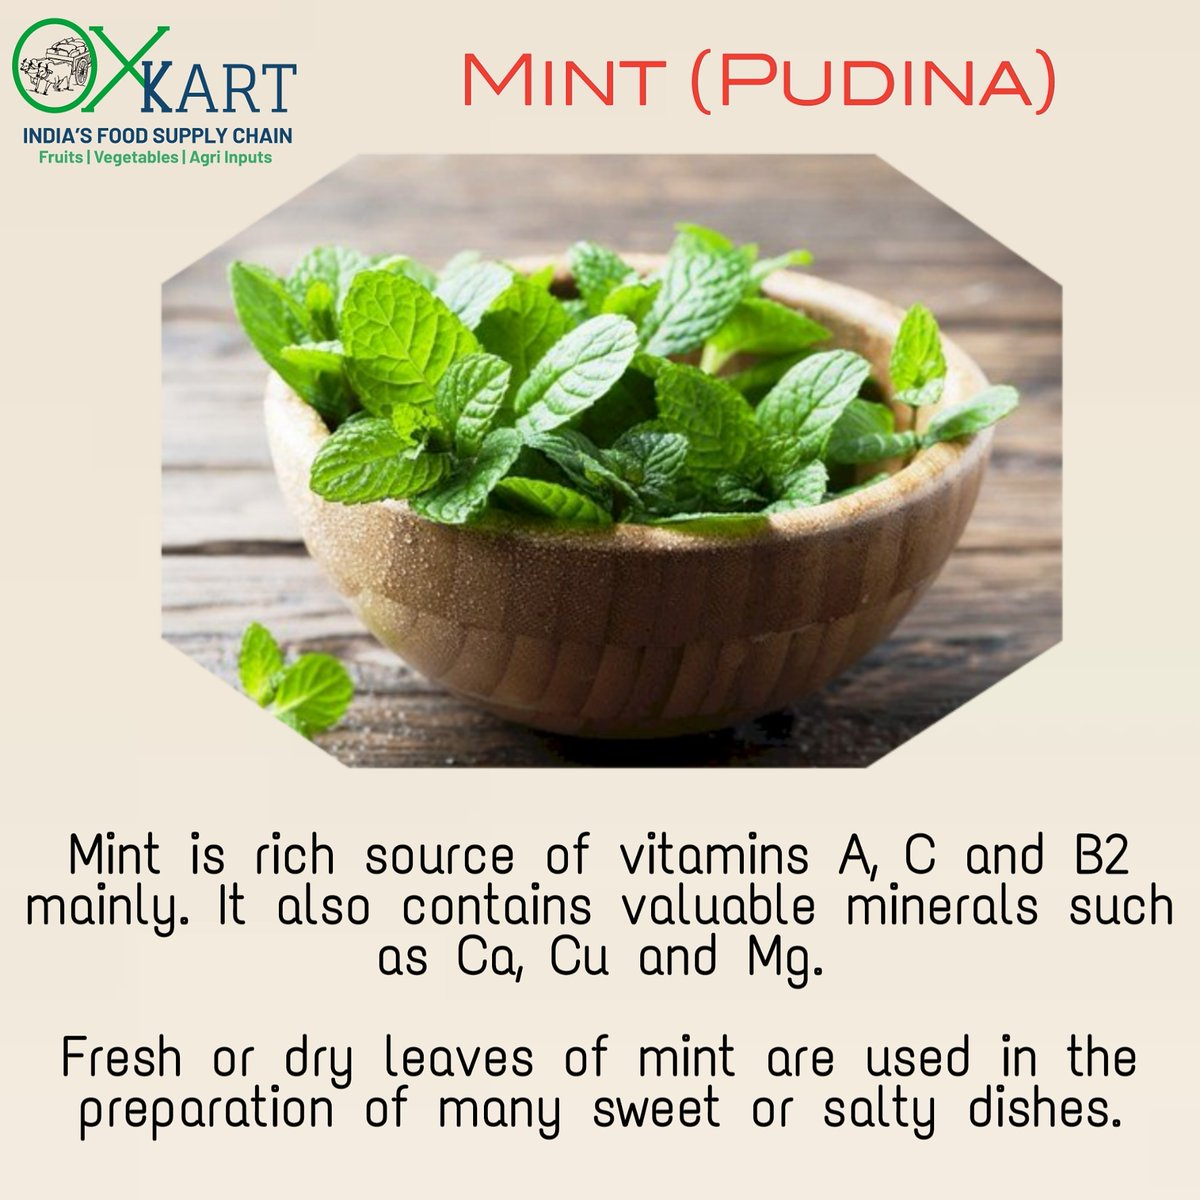 Use of pudina or mint leaves in food is more in summers. Pudina chutney plays a vital role to make our meals tastier.   #mintleaves #mint #india #agribusiness  #startup #oxkart #socialworker #indianfood #bhaktisharma #incubationmaster #youthmaster #startuppathshala https://t.co/6TRMshr5rw